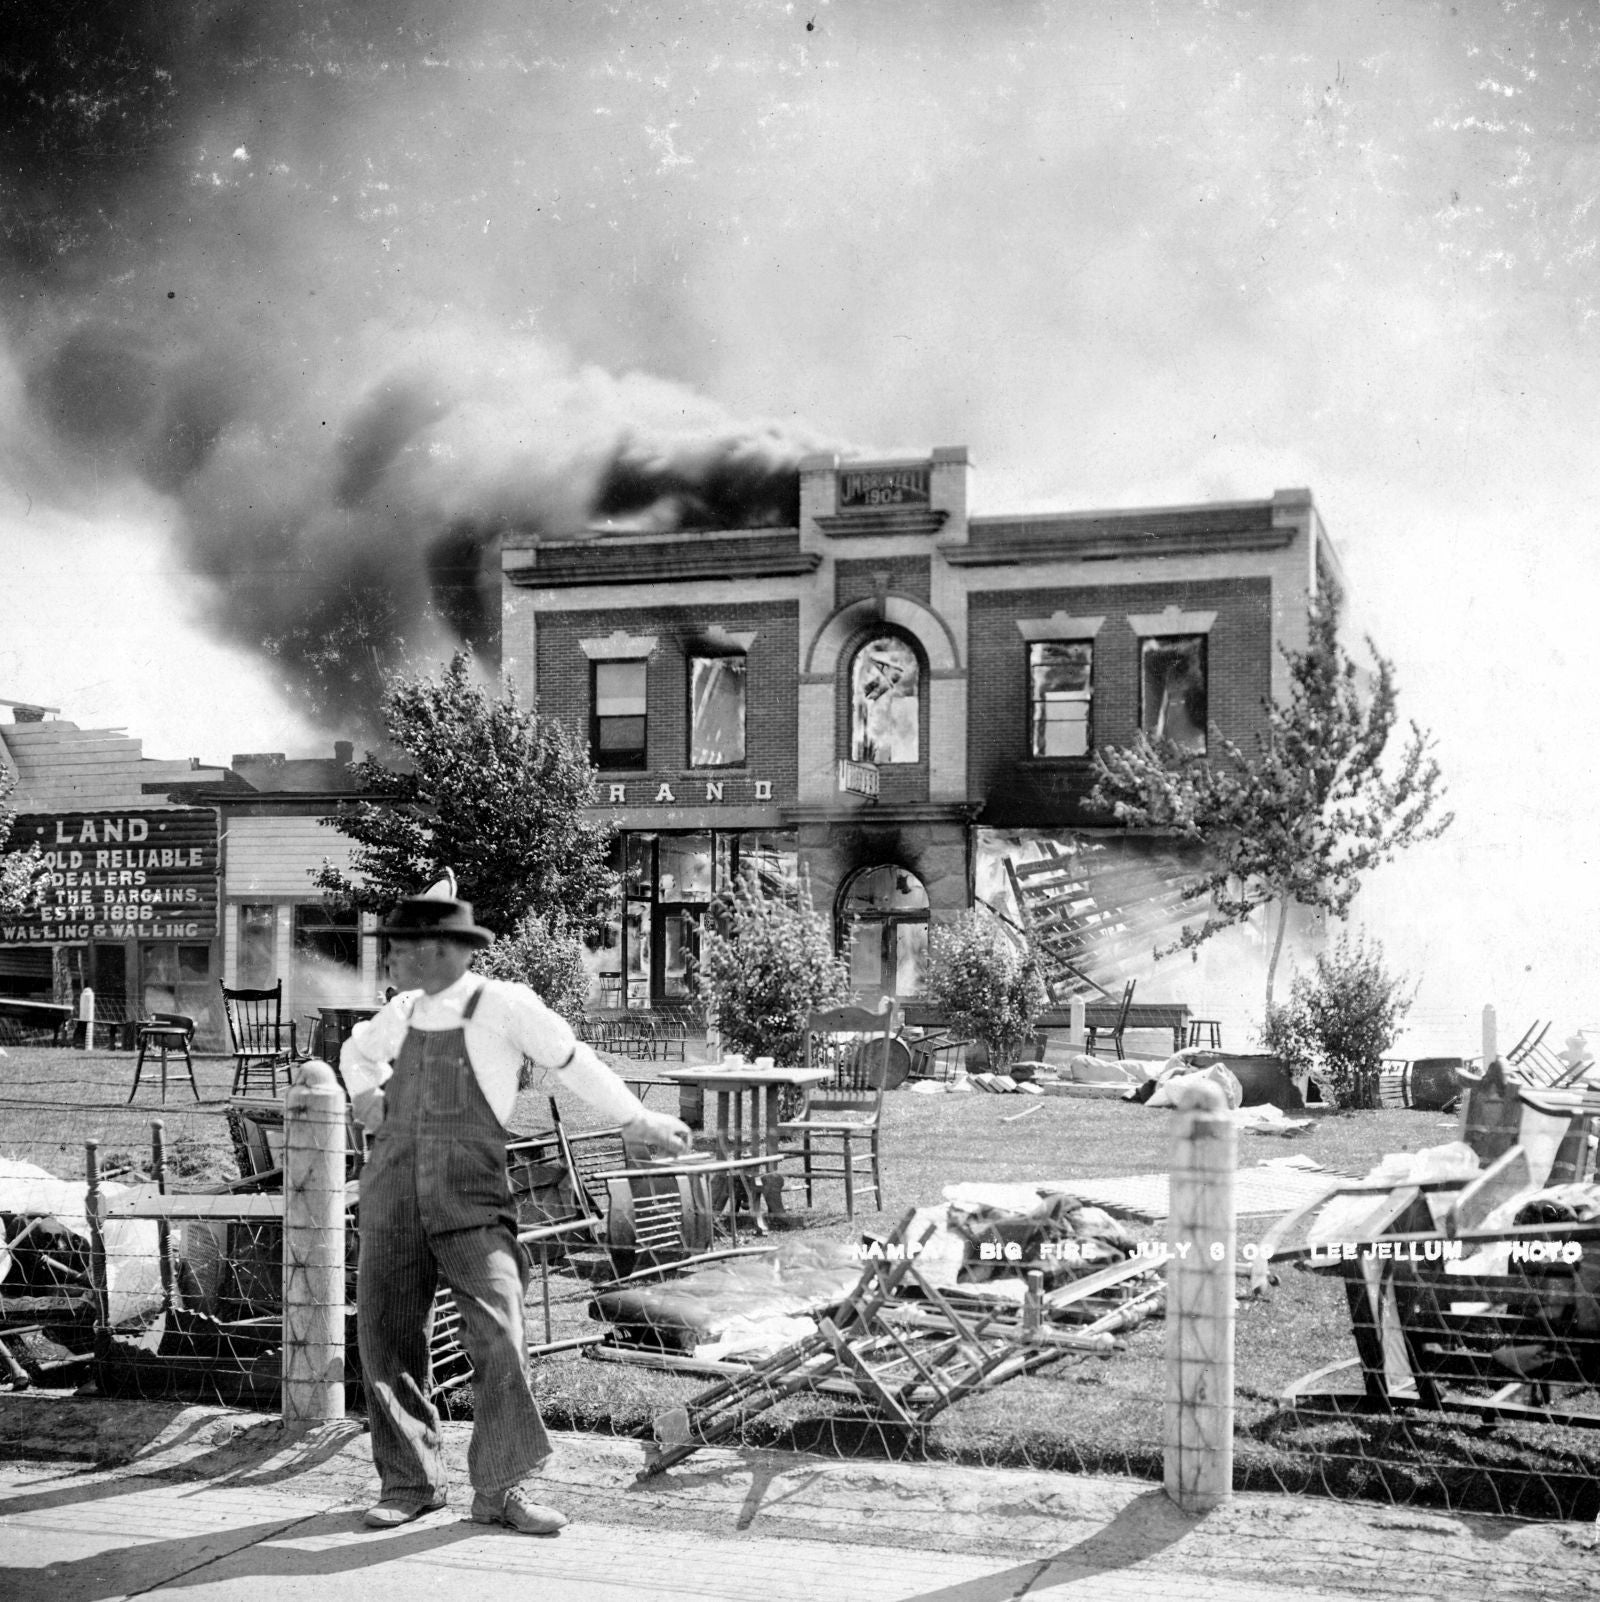 Nampa Fire - July 3, 1909 - Grand Hotel Ablaze